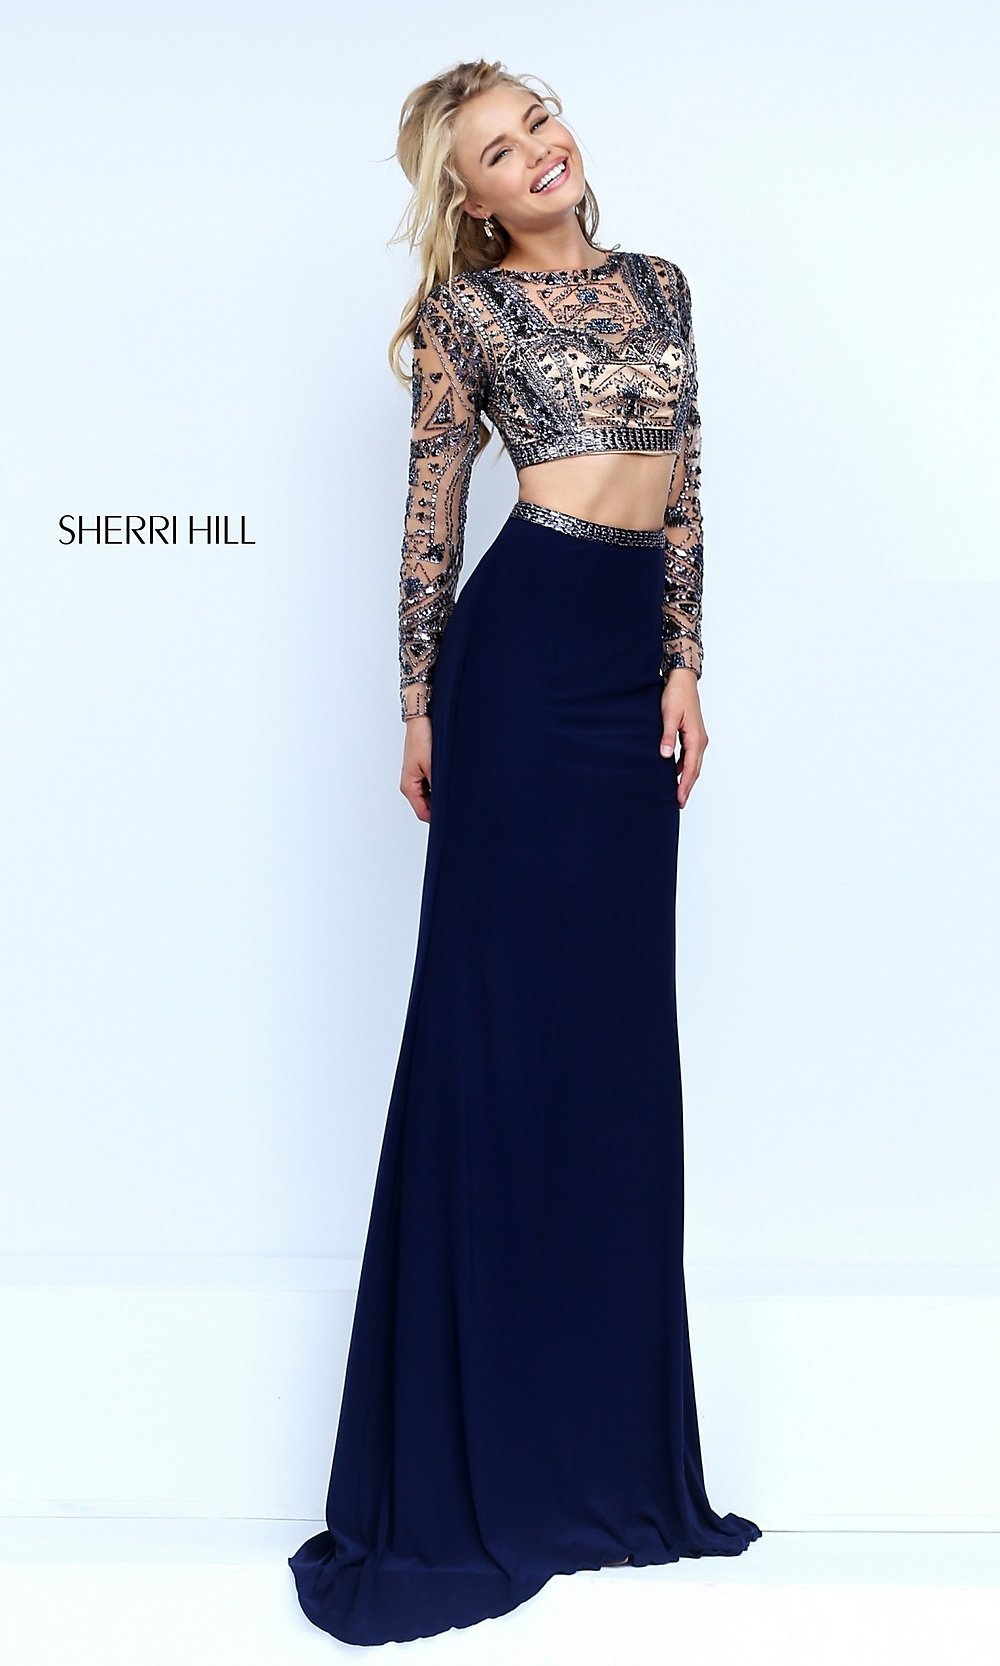 Sherri hill dresses cheap uk